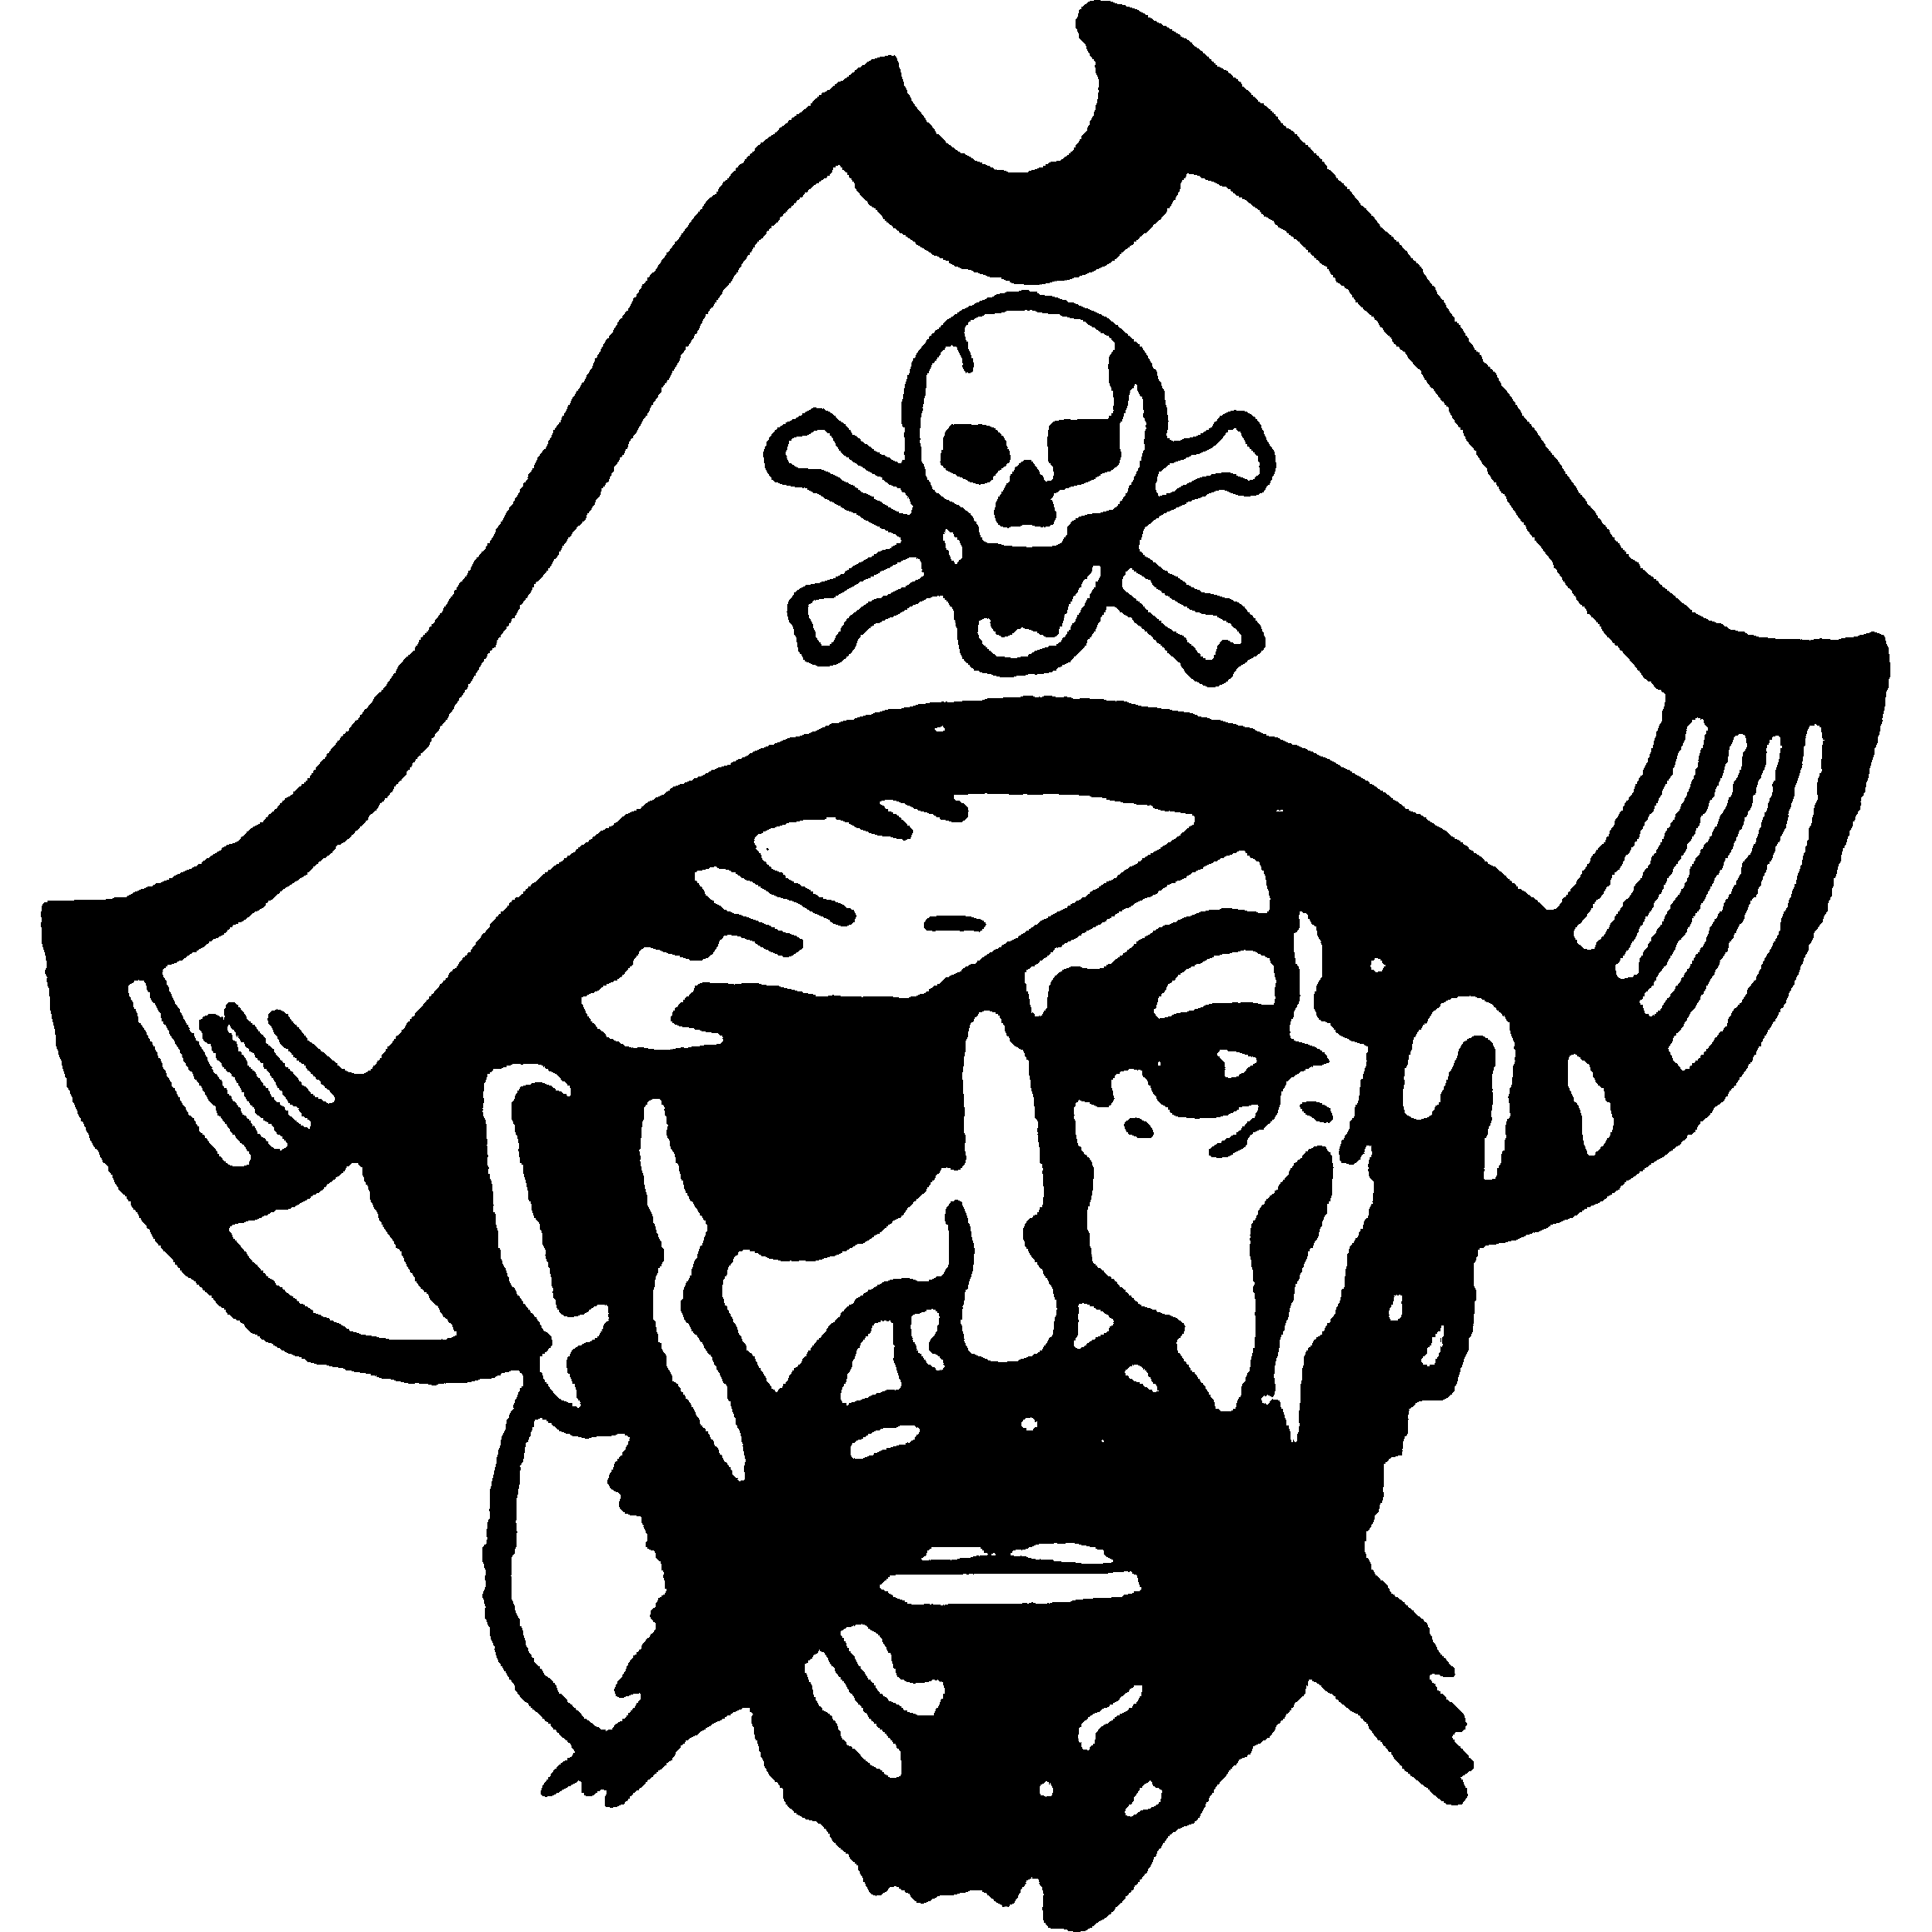 Pirate Skull And Bones - ClipArt Best